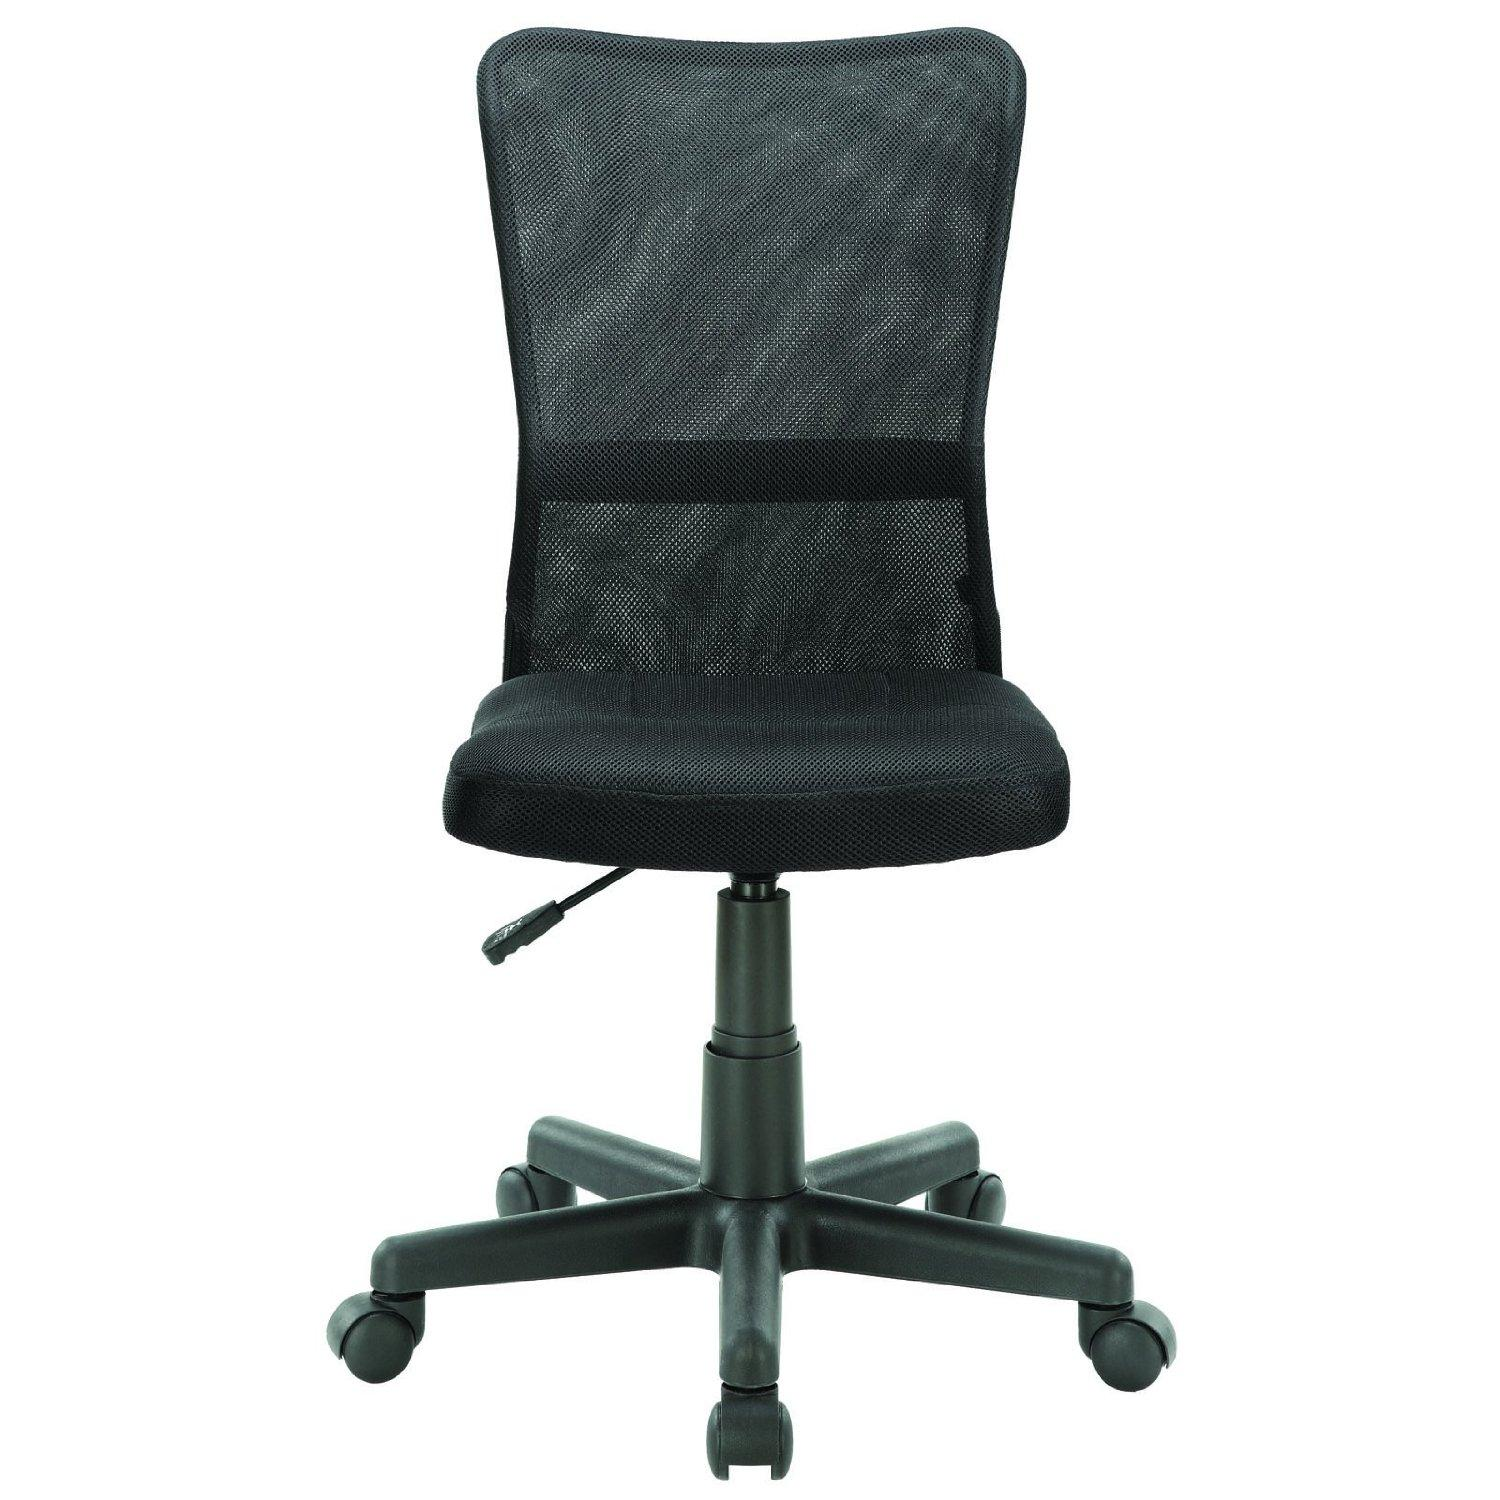 swivel chair not staying up hanging egg with stand uk task office sleek modern compact